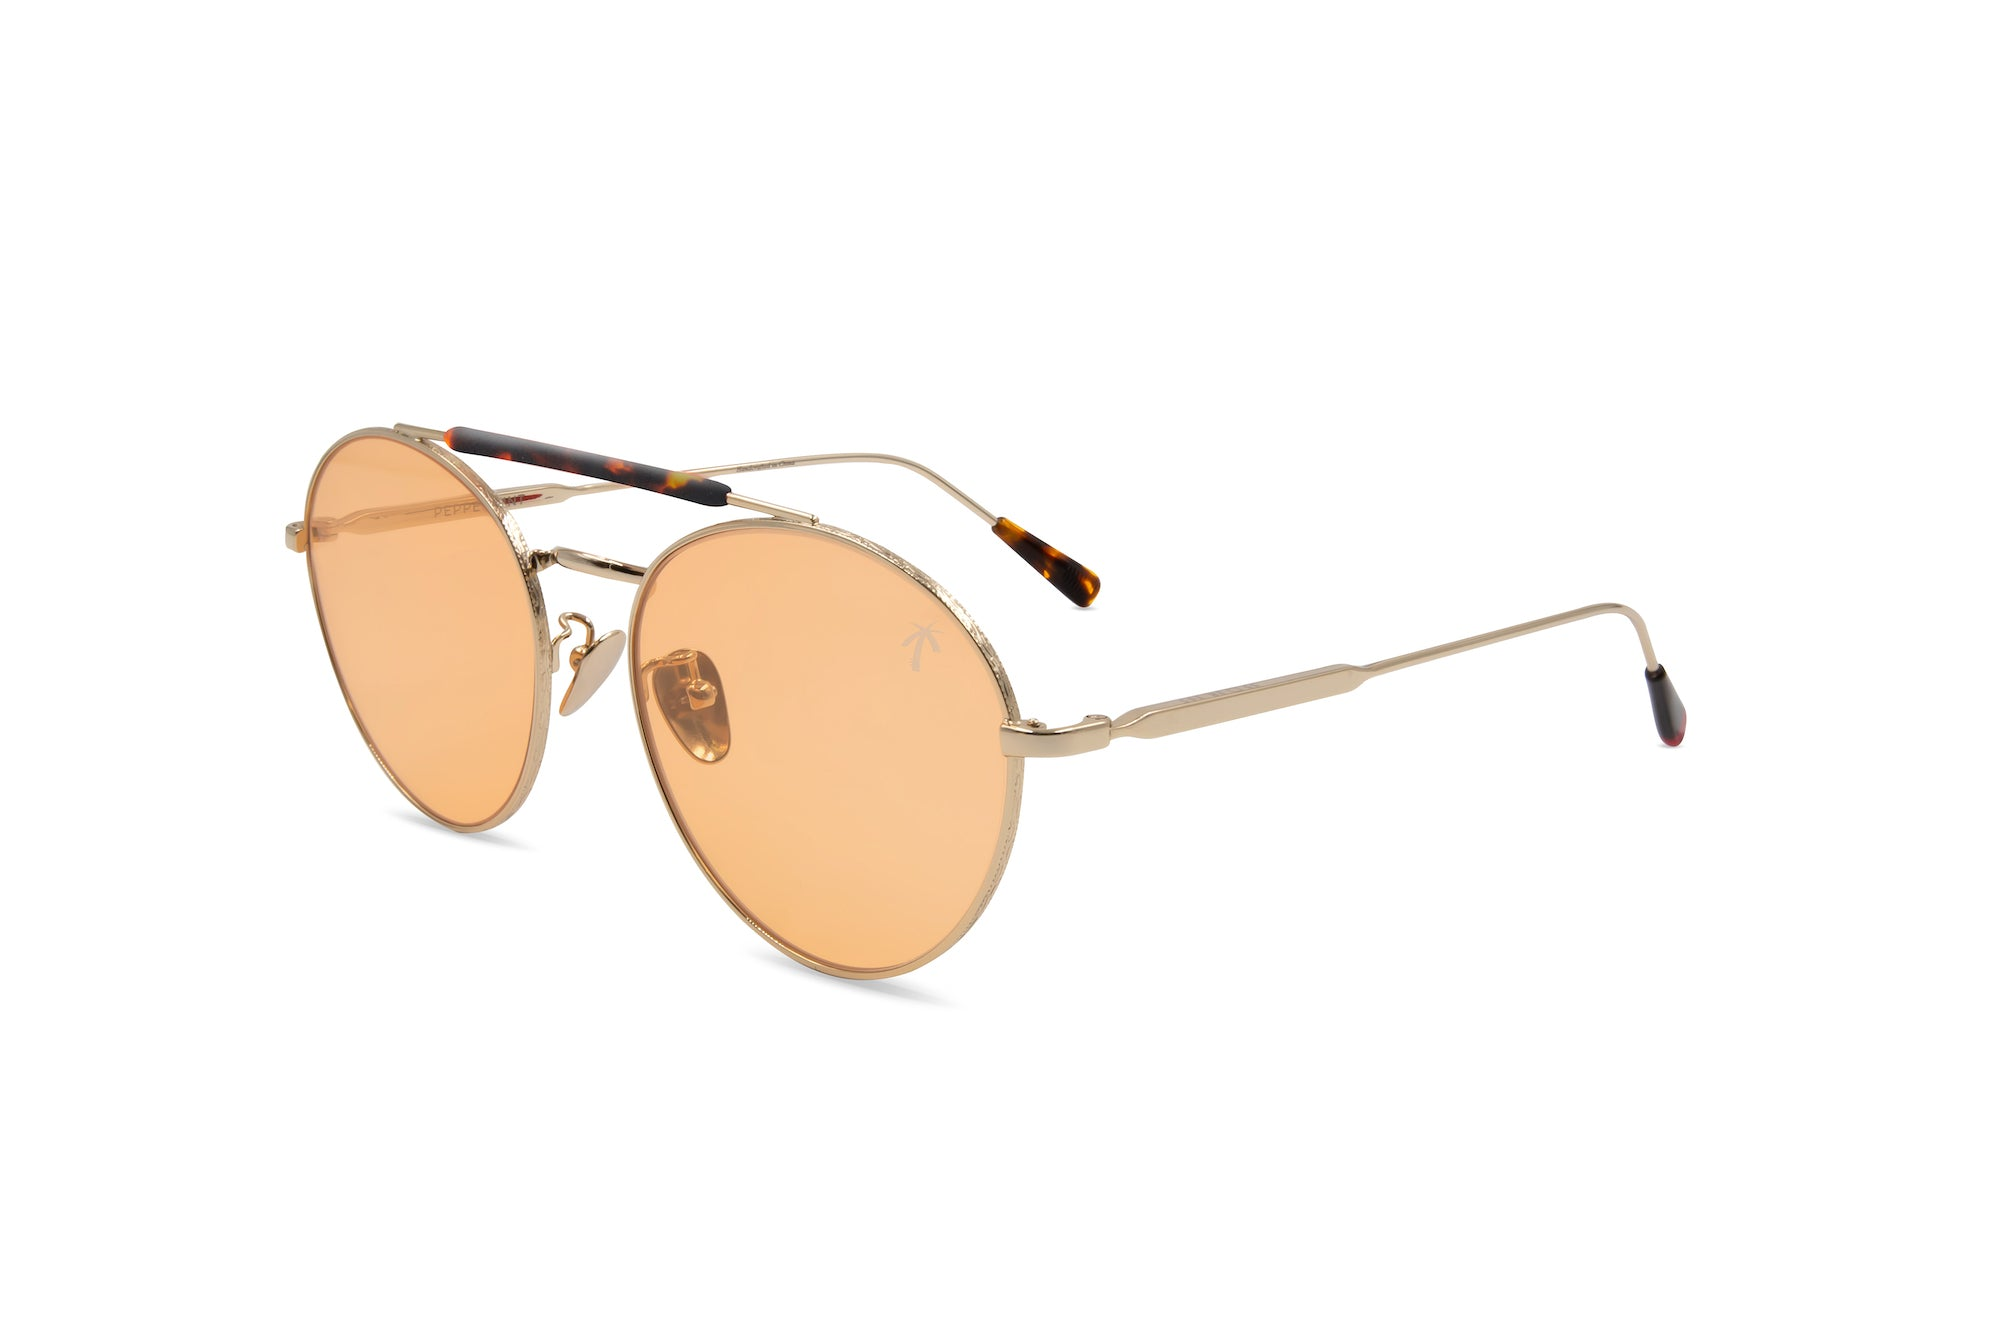 Westwood in Orange - Peppertint - Designer sunglasses